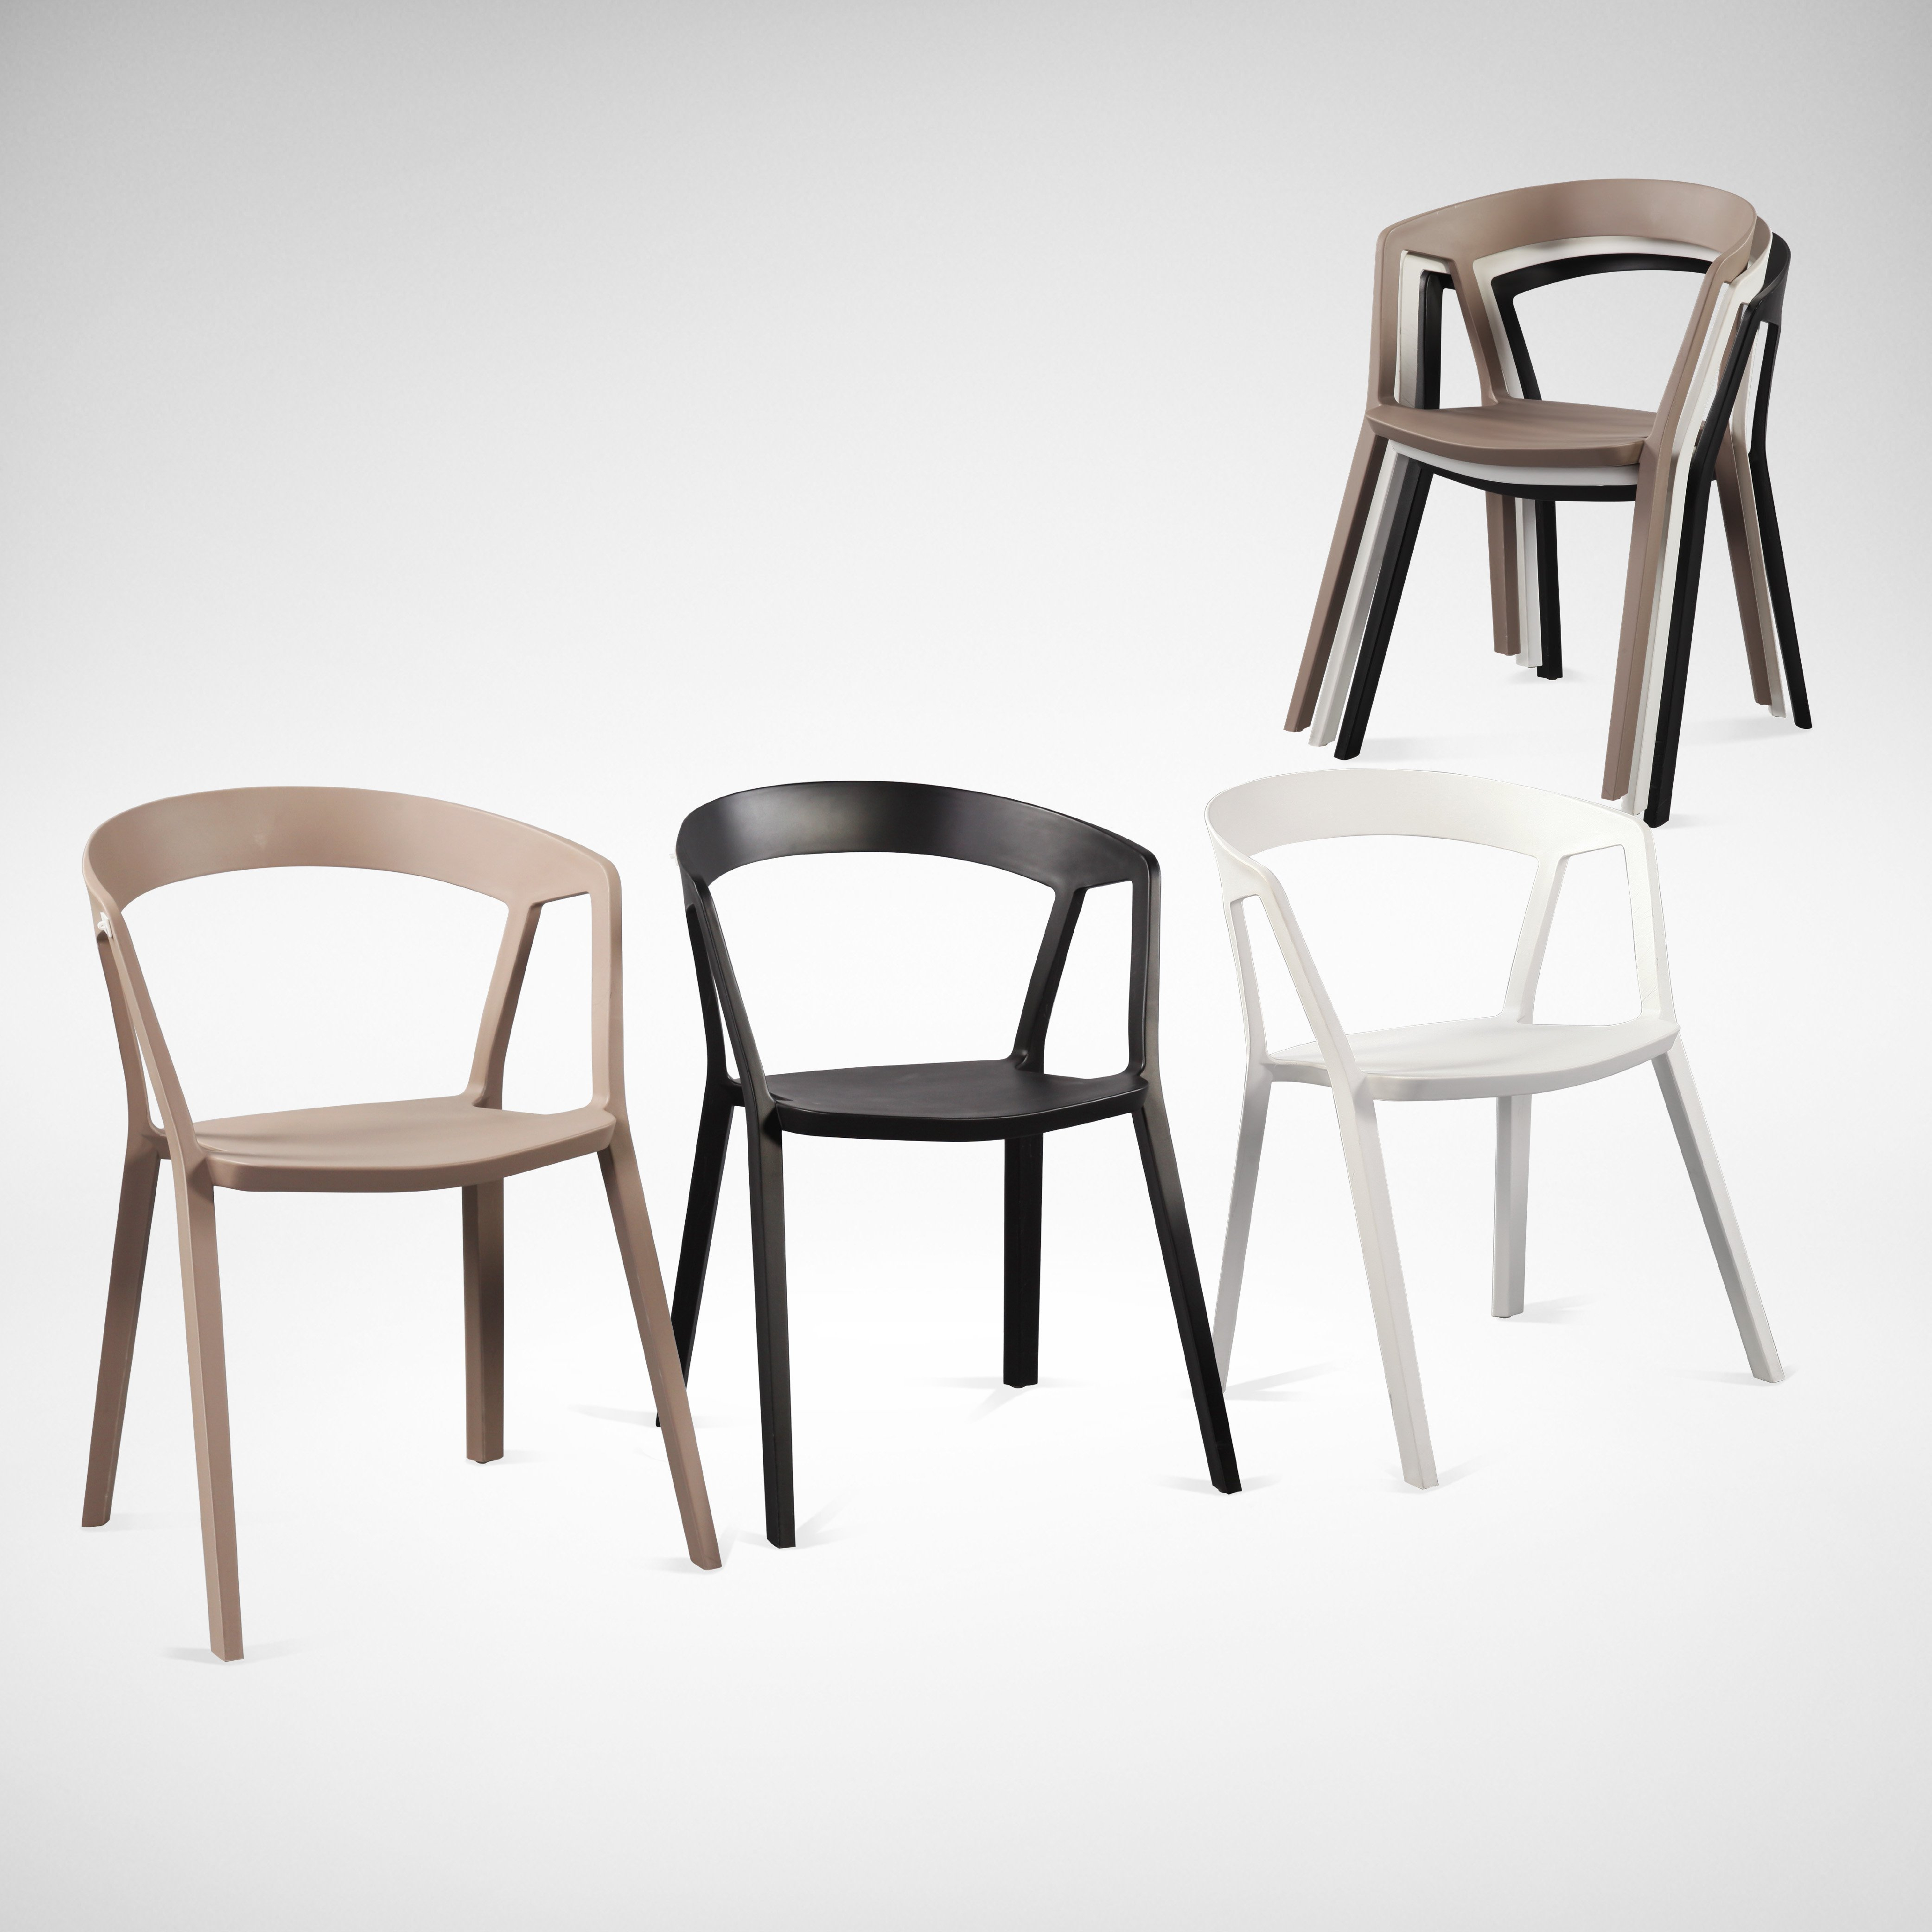 Mitchell Arm Chair | Comfort Design – The Chair & Table People For Mitchell Arm Sofa Chairs (View 3 of 25)